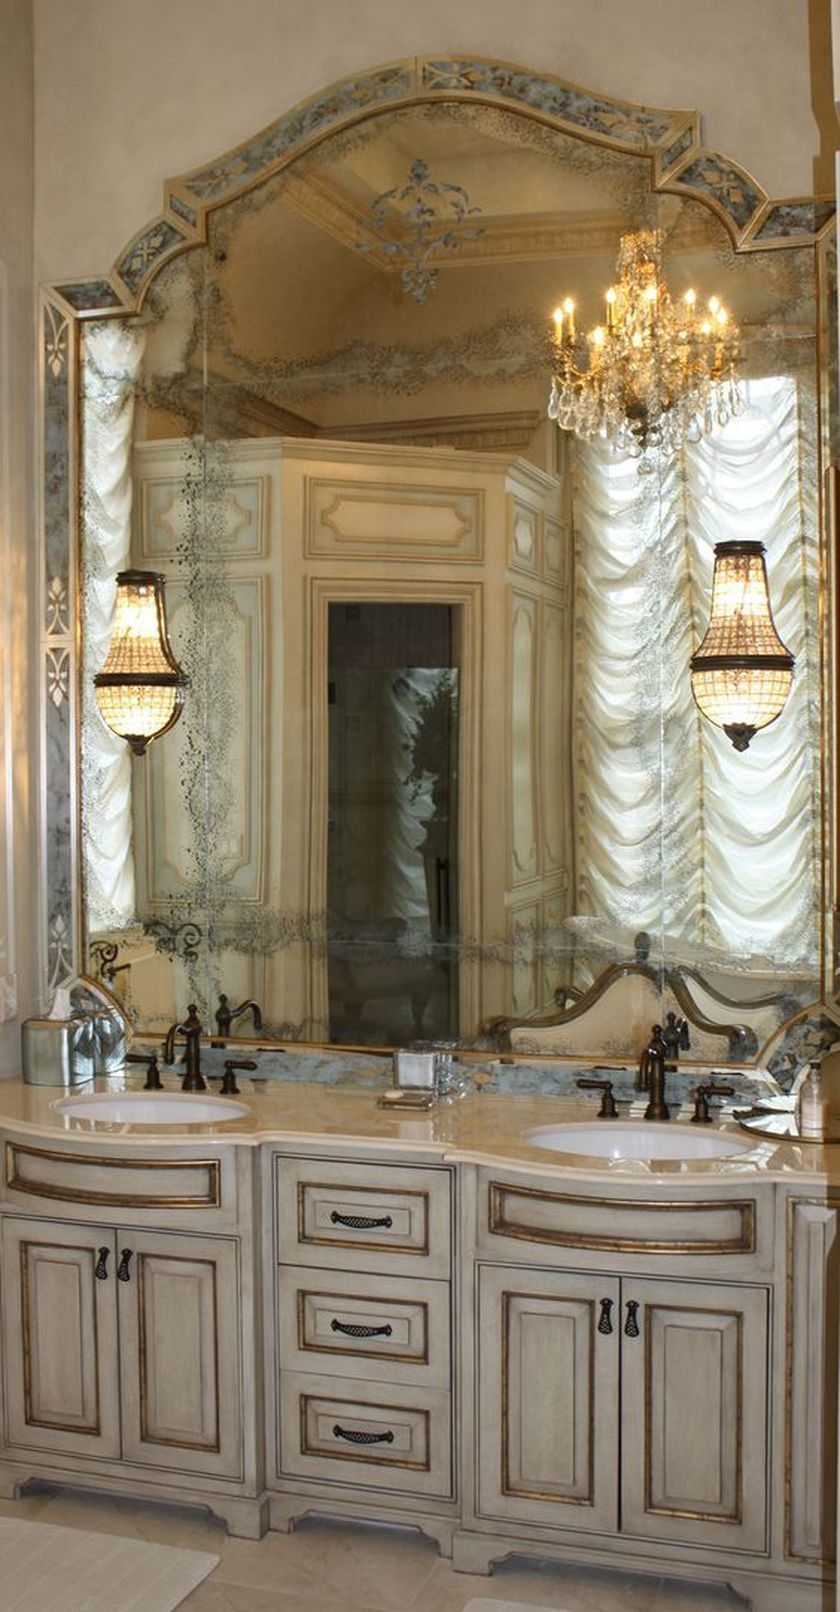 Awesome Rustic Country Bathroom Mirror Ideas 65 Luxurycountrybathrooms Country Bathroom Mirrors French Country Bathroom Farmhouse Master Bathroom